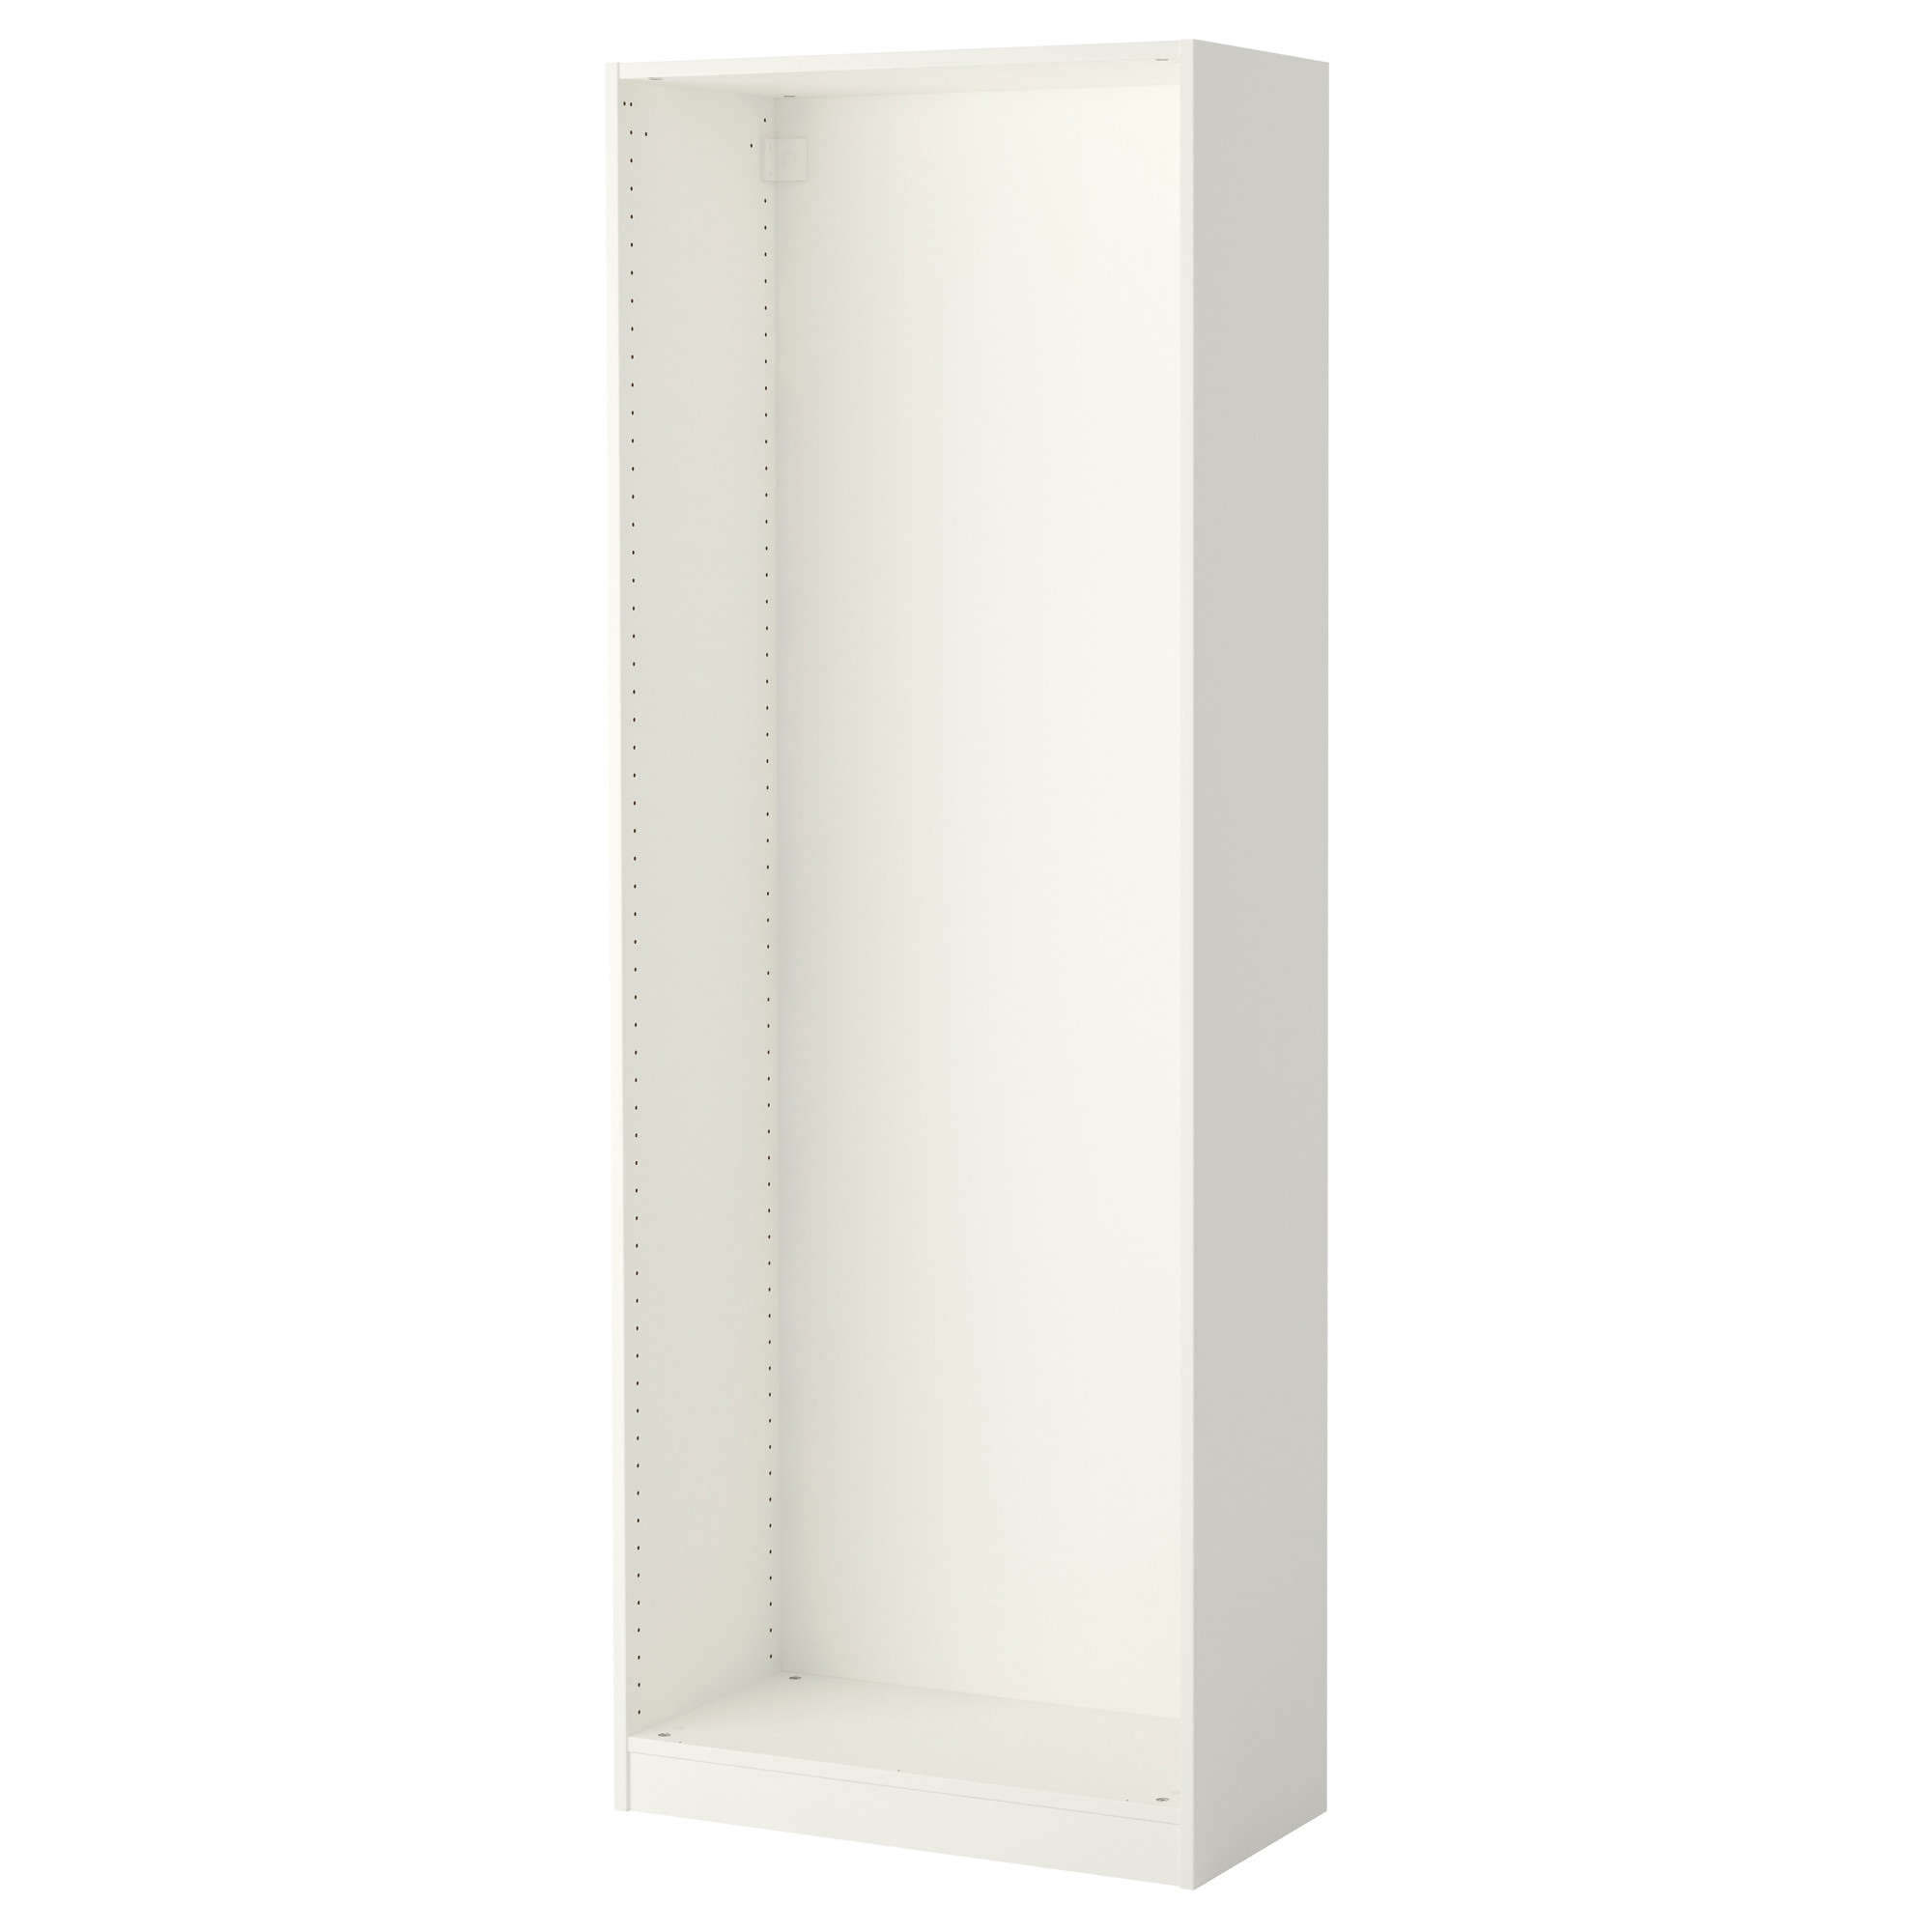 Armoire D Angle Ikea Dressing Duangle With Armoire D Angle Ikea Great Penderie D Angle Ikea